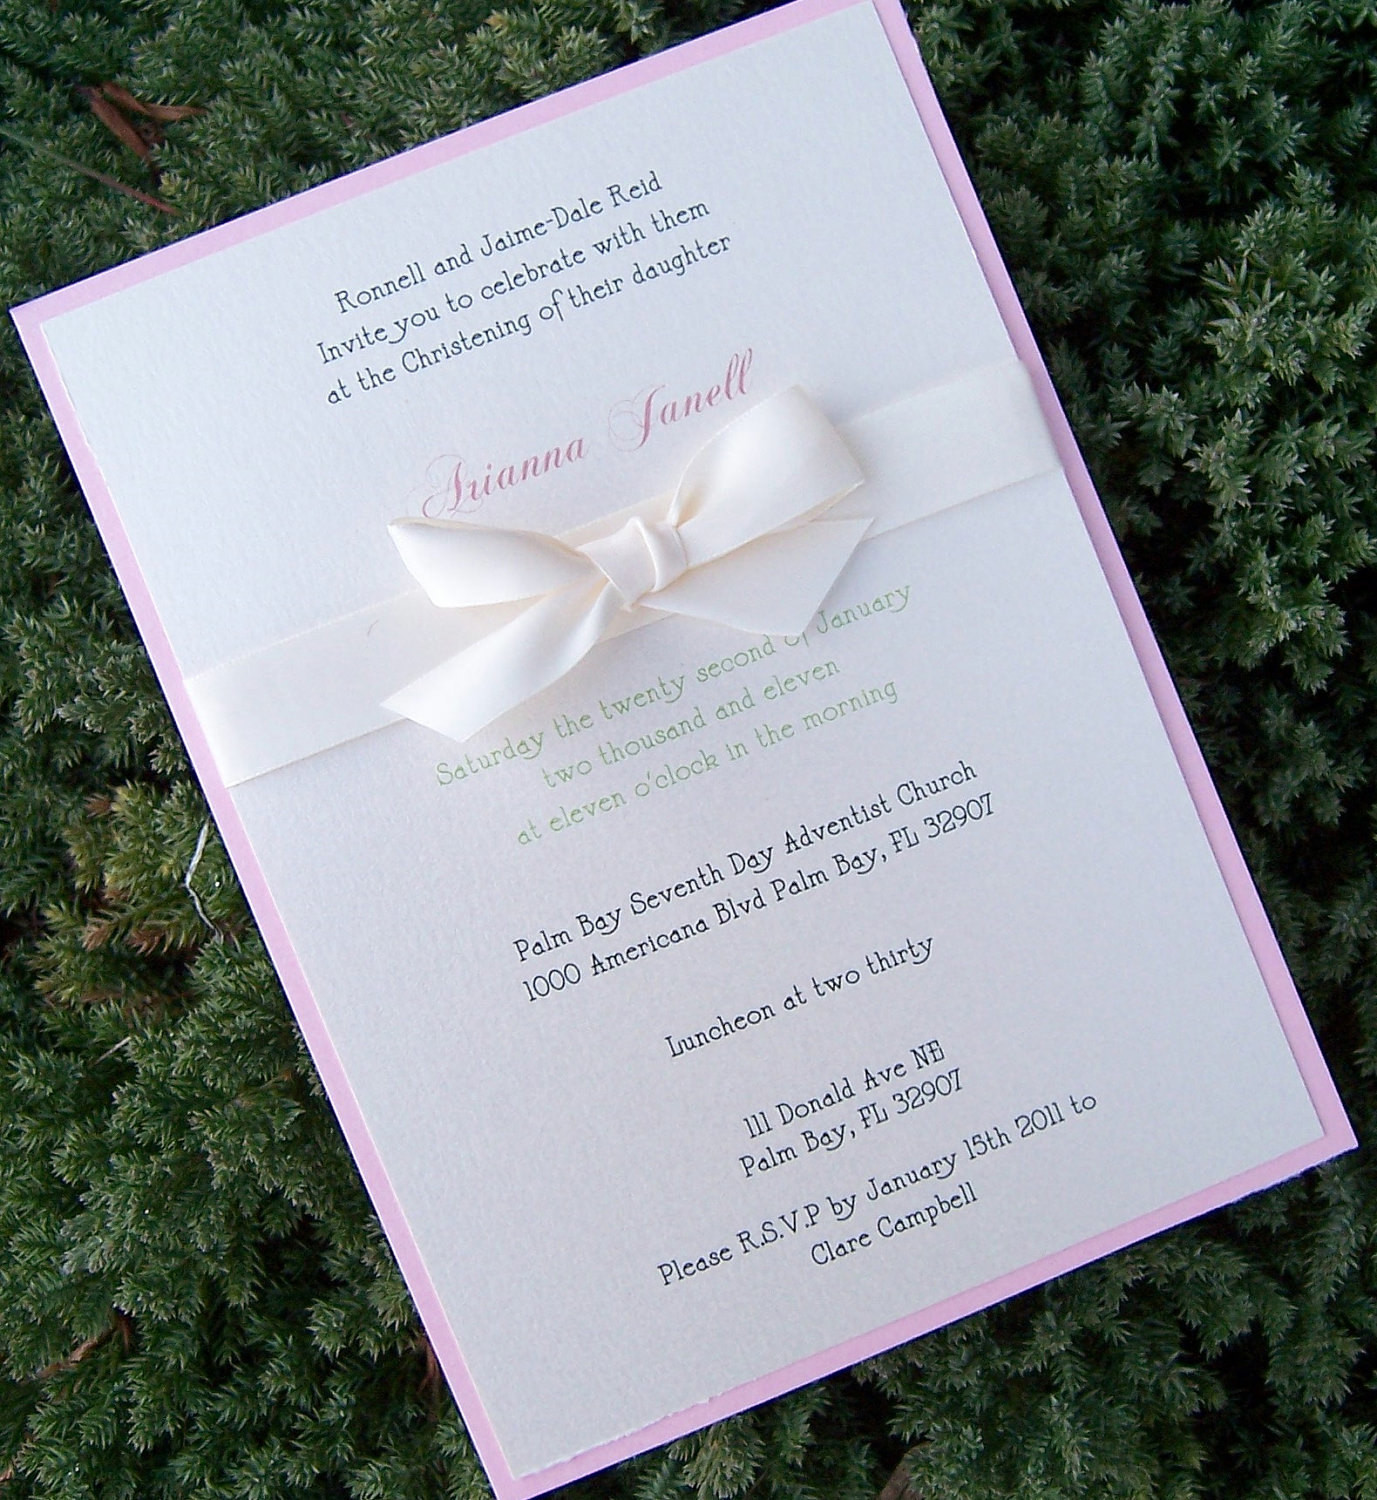 Best ideas about Baptism Birthday Invitations . Save or Pin Baptism invitation child birthday party invitation baby Now.